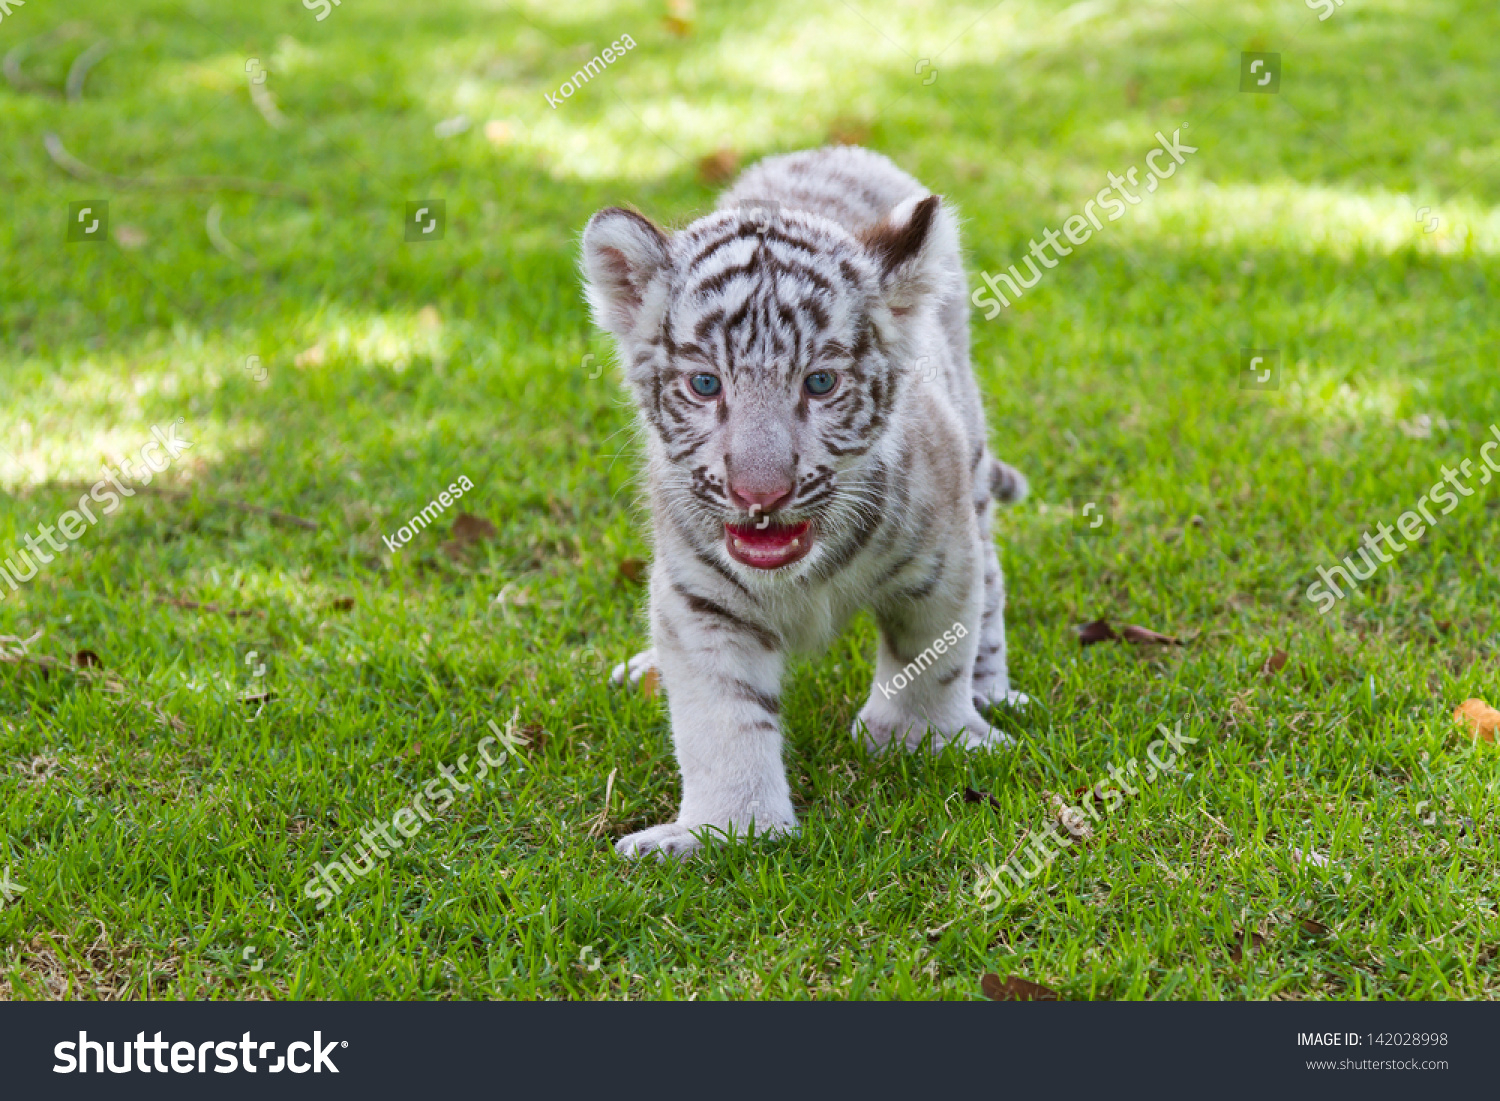 baby white tiger stock photo (edit now) 142028998 - shutterstock